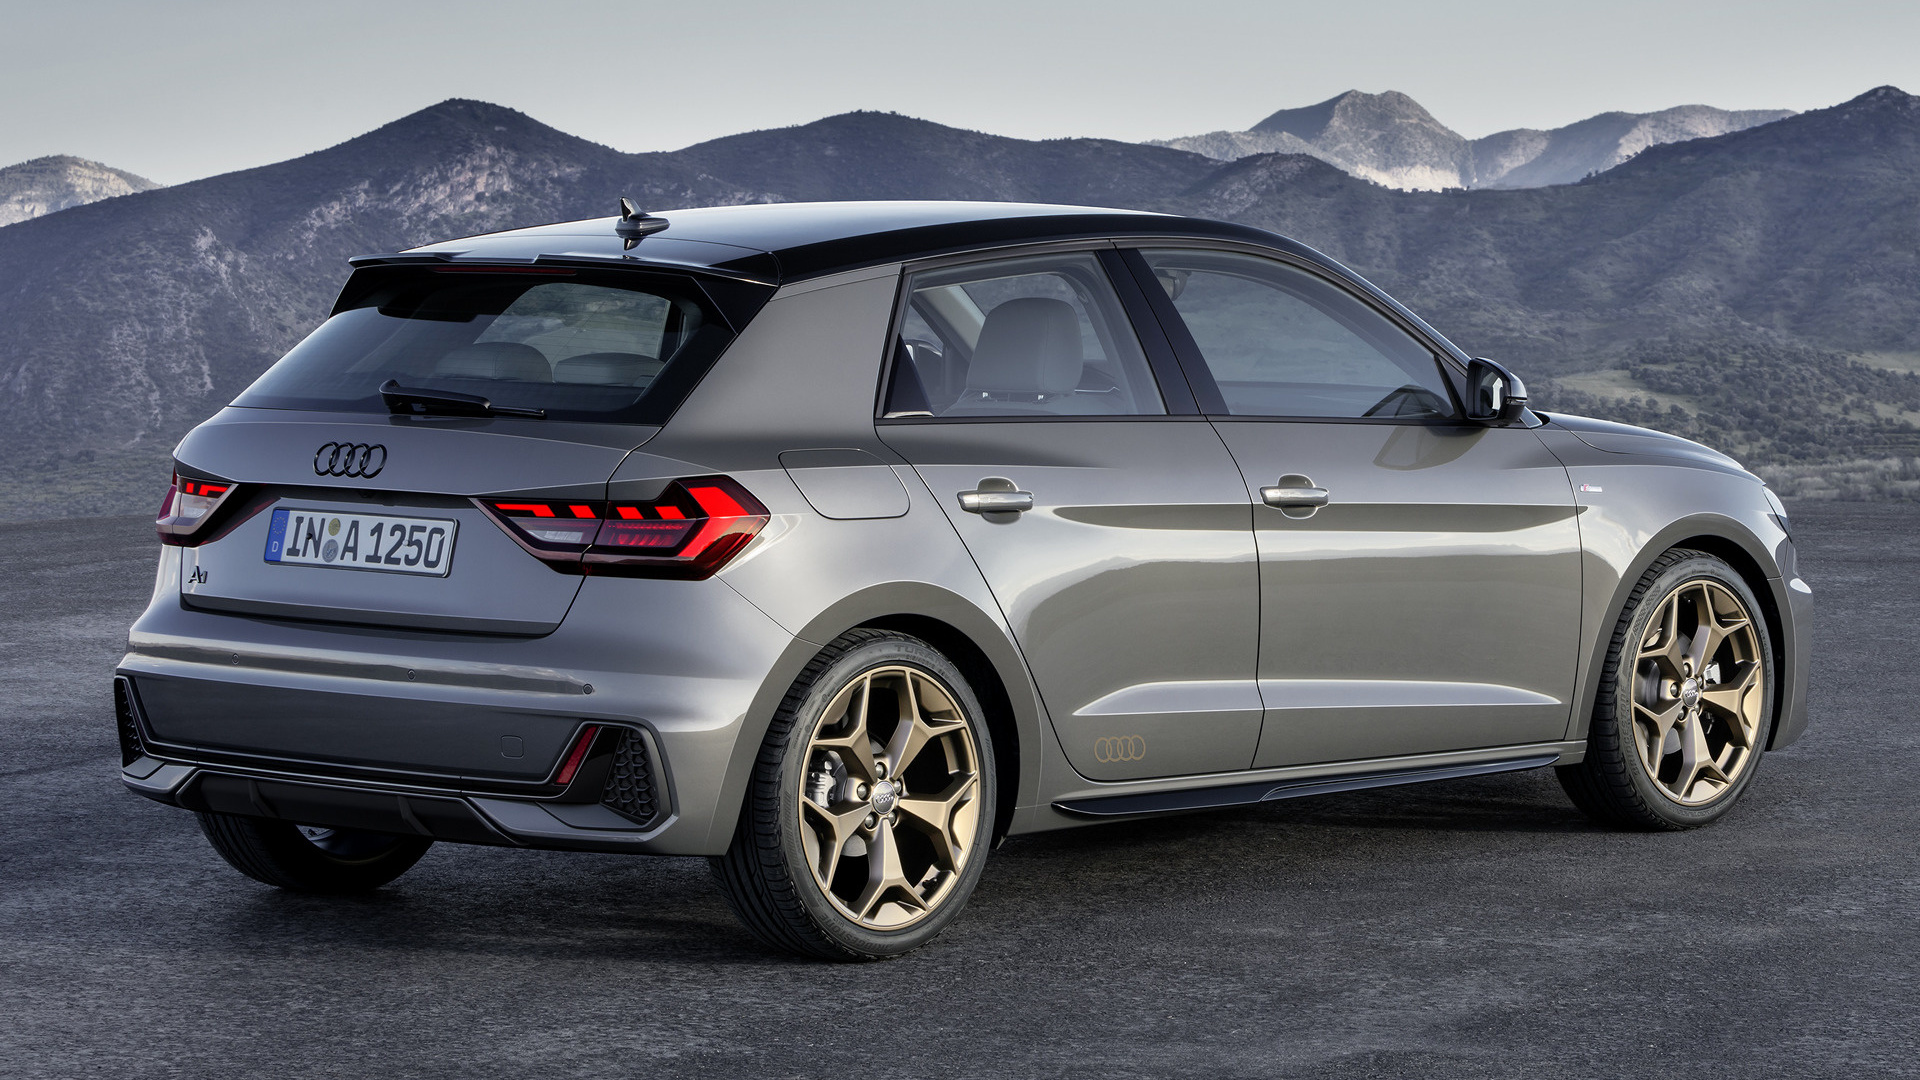 2018 Audi A1 Sportback Edition One Wallpapers And Hd